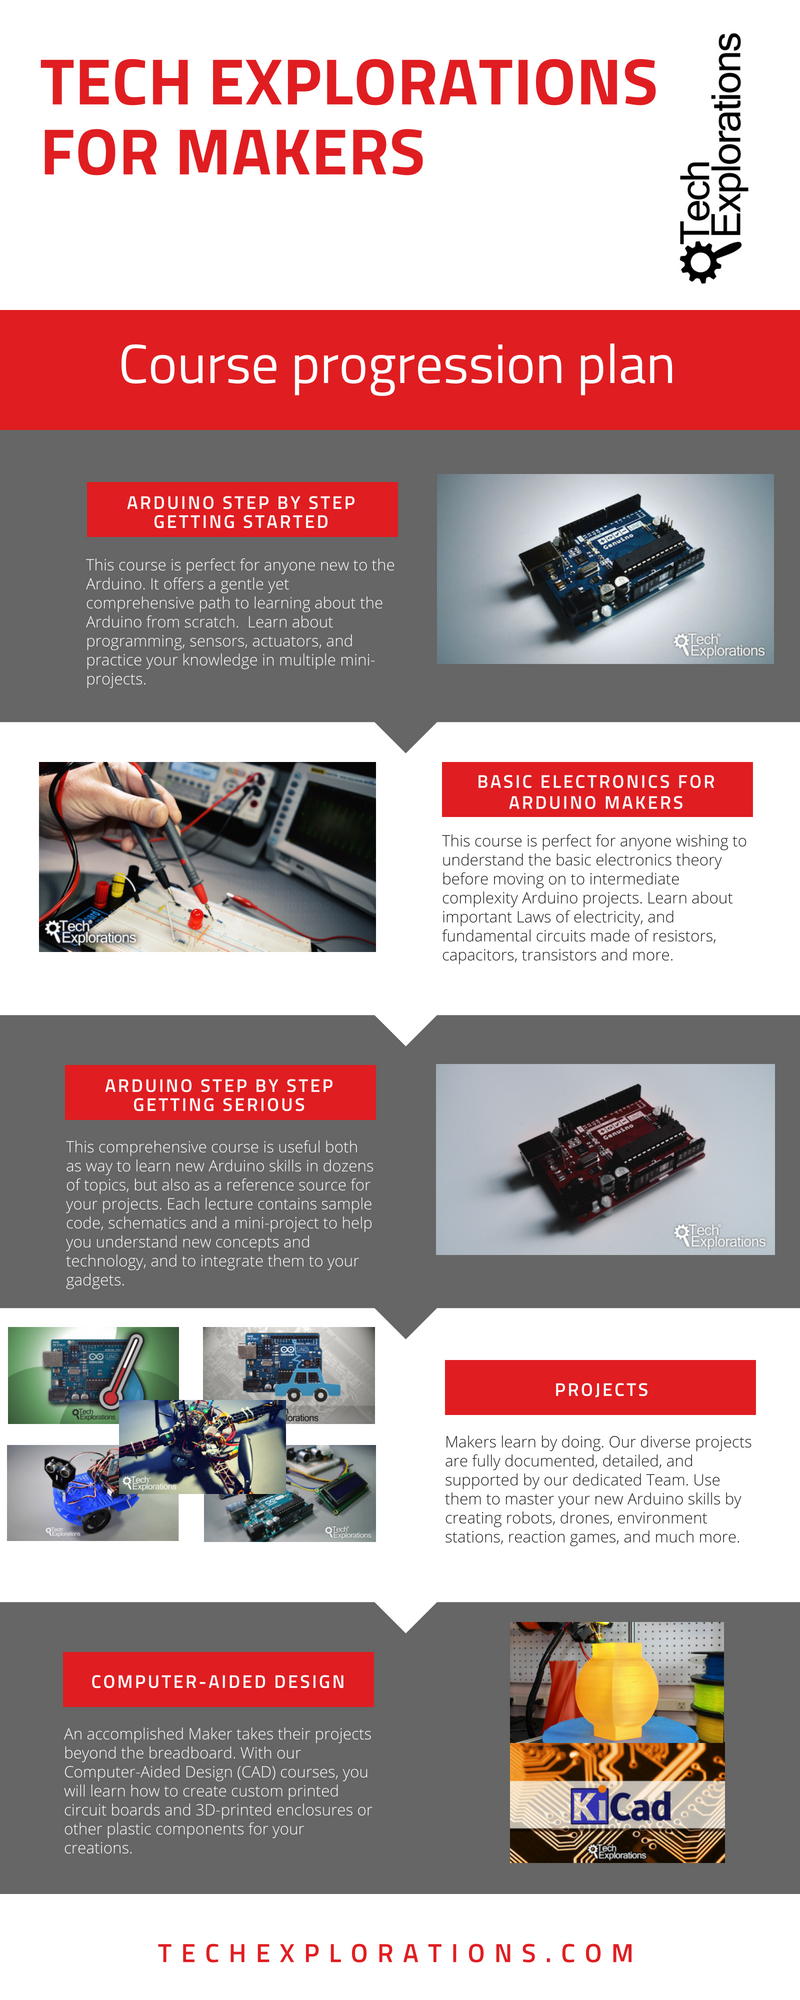 Maker Education For Hobbyists Tech Explorations Small Projects Of Electronics Start With Learning The Arduino And Basics Practice Your New Skills On Large Continue Cycle At Next Level